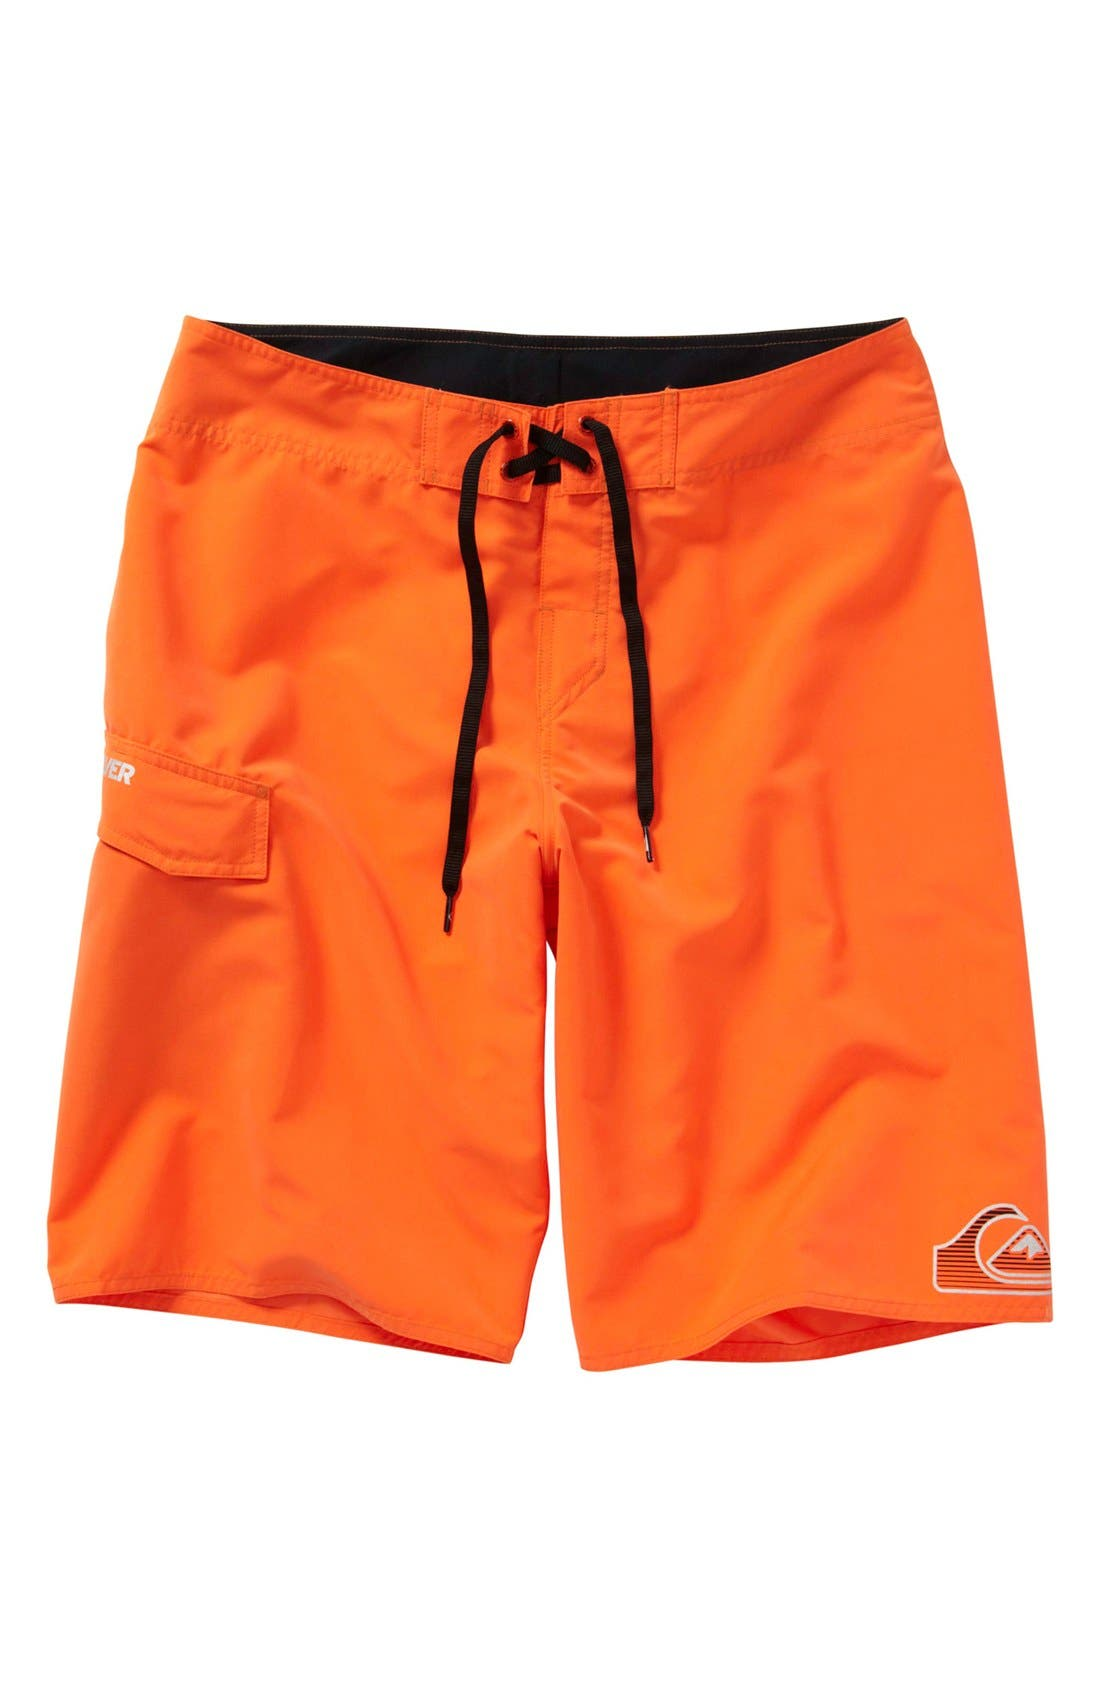 Alternate Image 1 Selected - Quiksilver 'Stomping' Board Shorts (Big Boys)